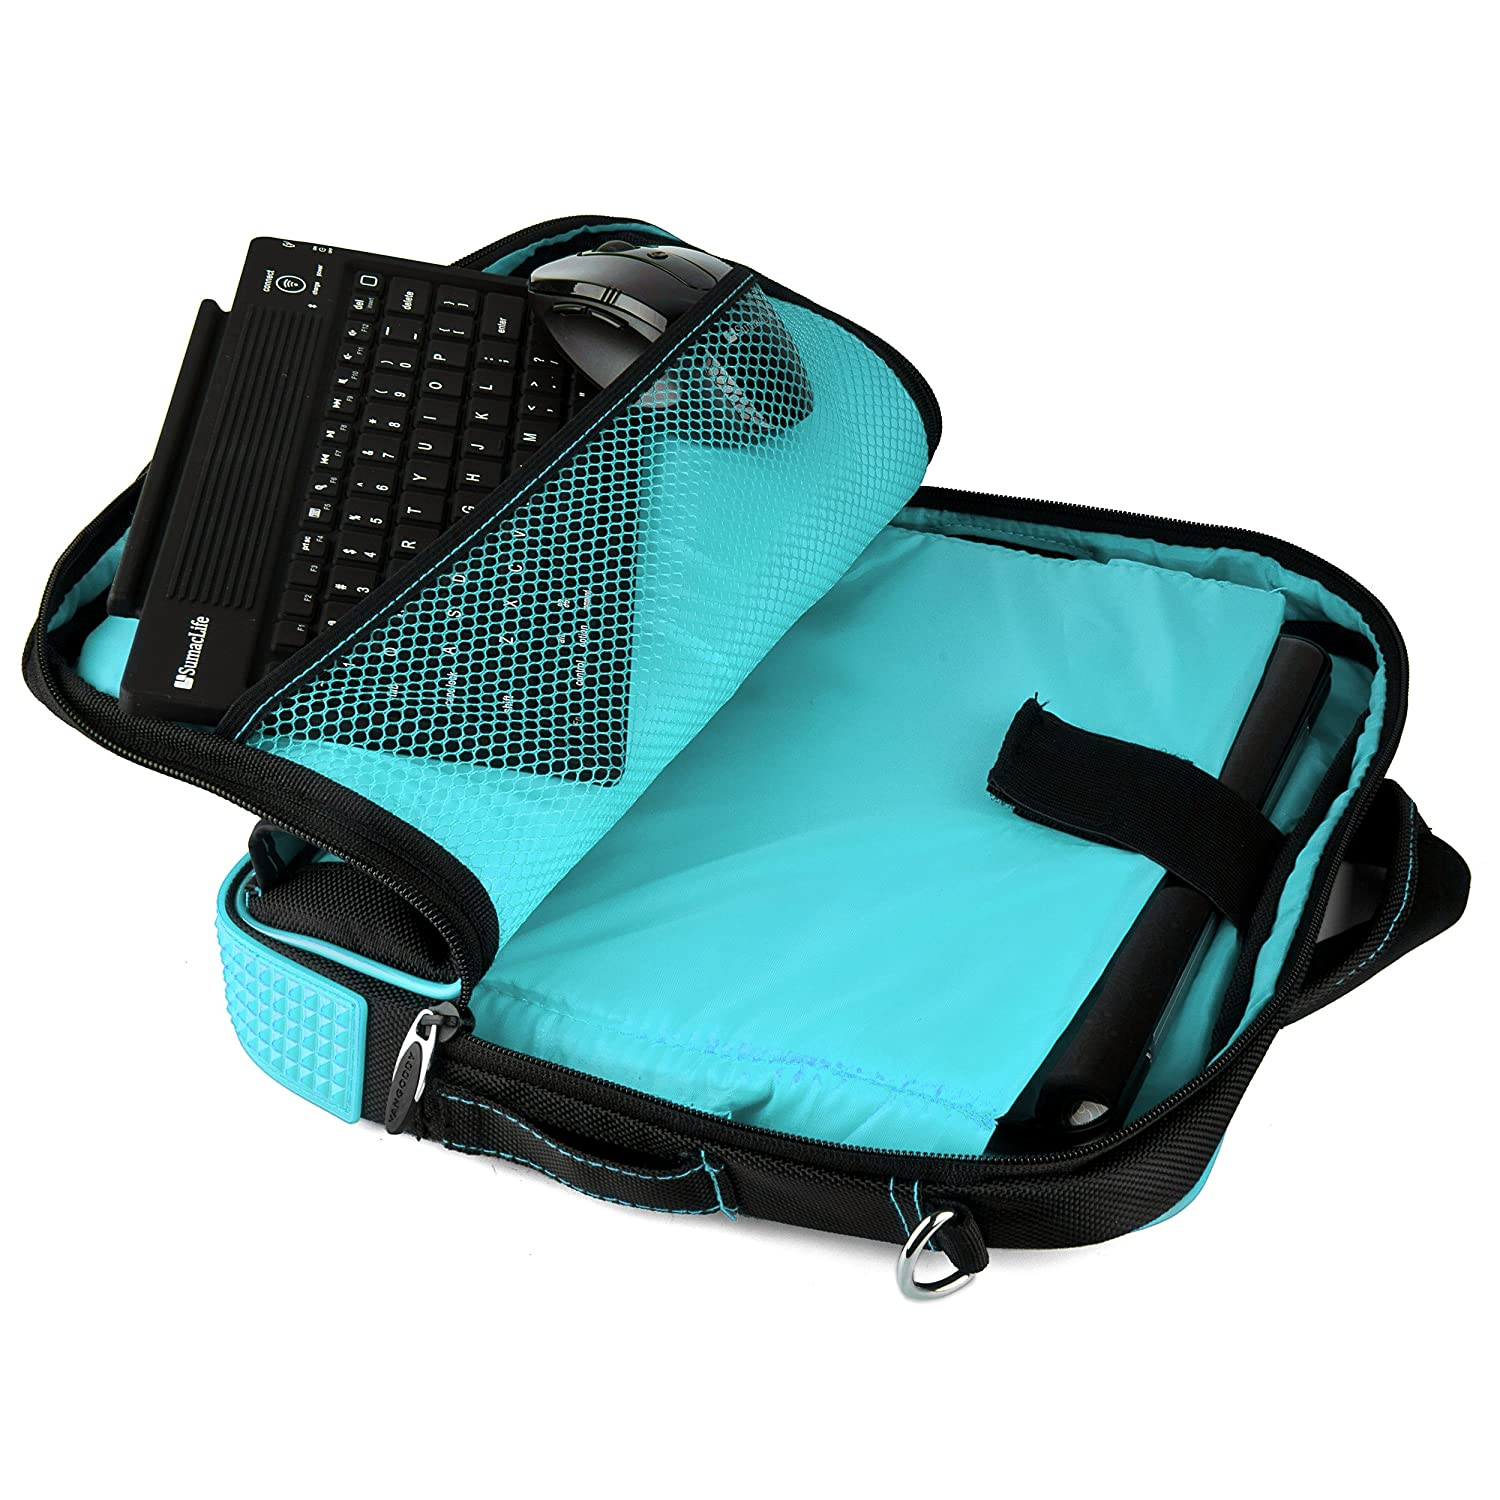 Pindar Laptop Shoulder Bag Case for Lenovo 13.3 to 14 inch Laptops